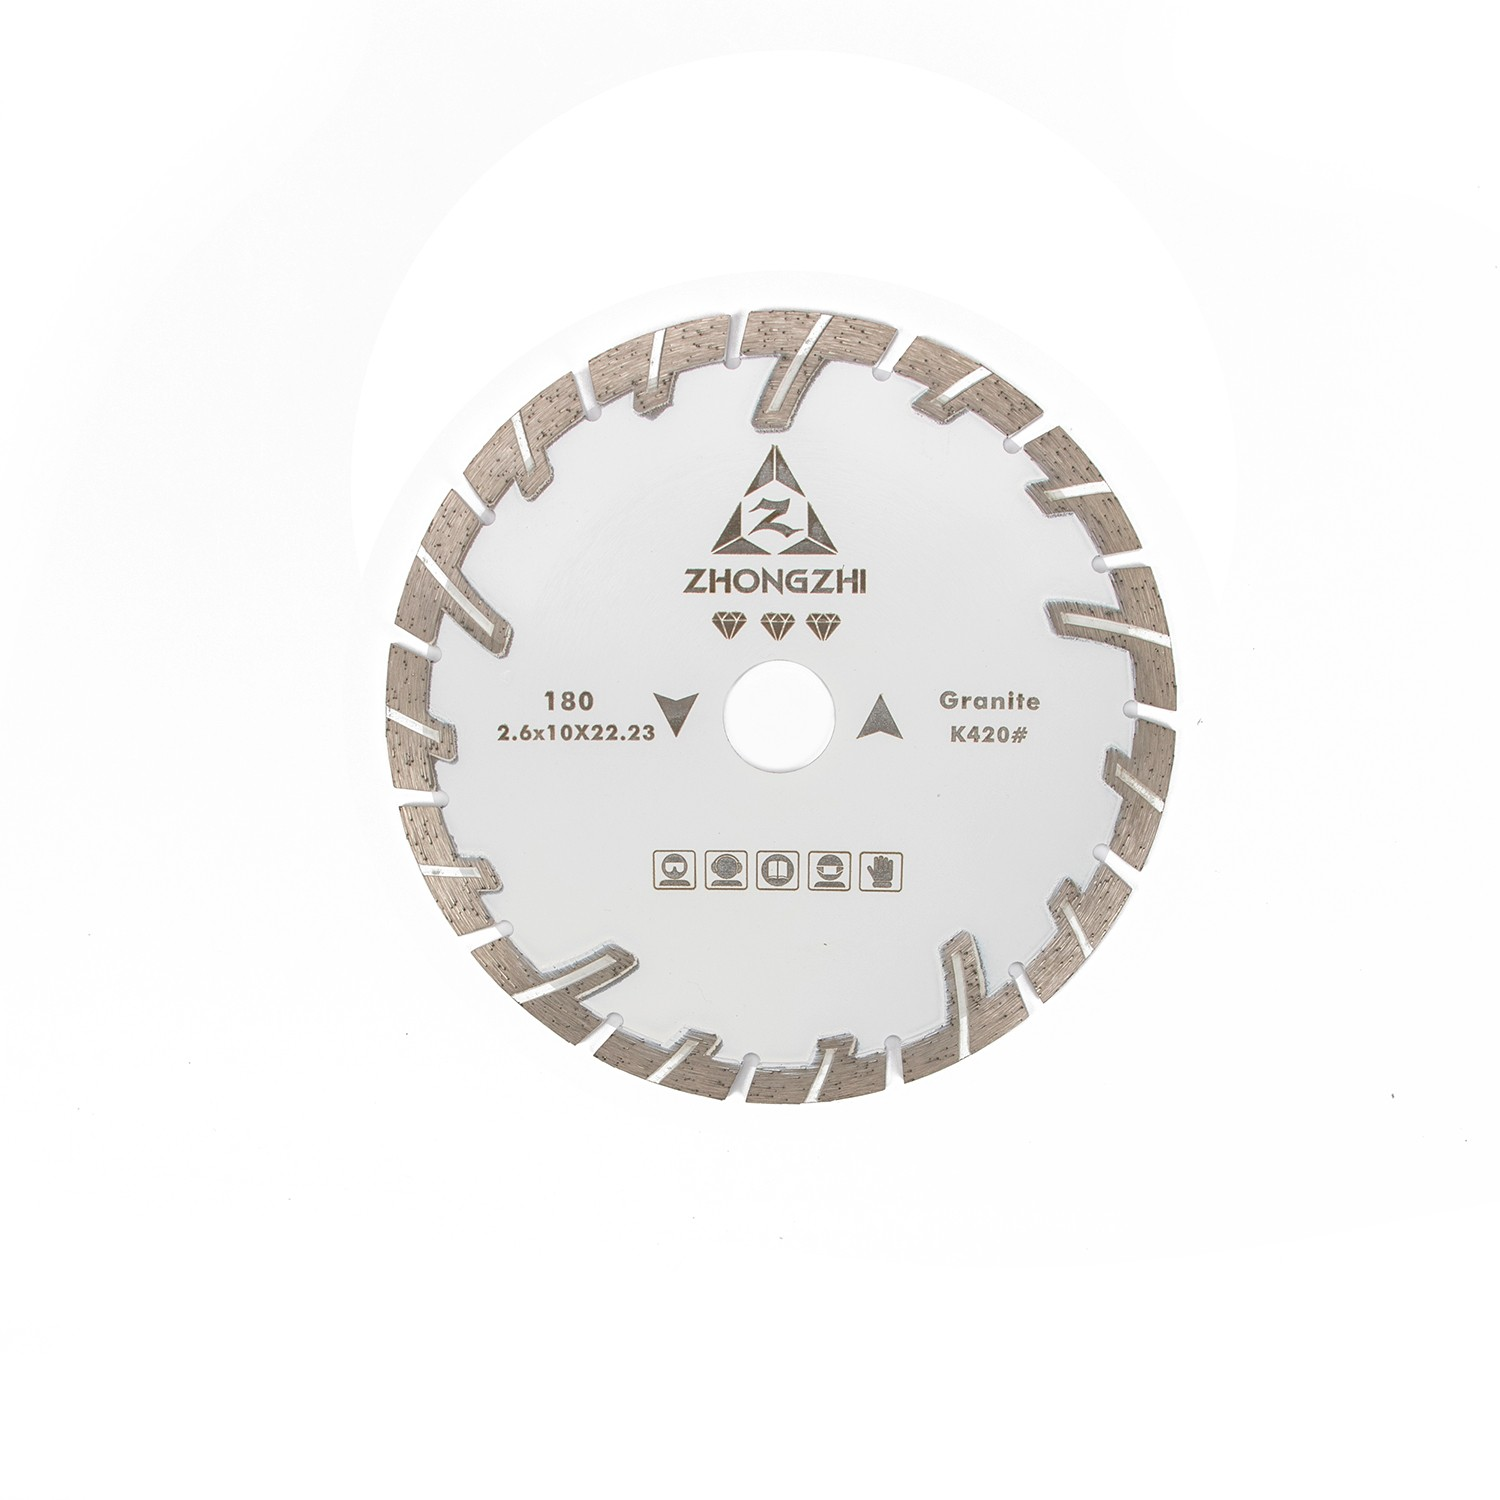 Higher Sharpness for Dry Cutting Sintered Segmented T shaped Turbo Blades with Protecting Tooth